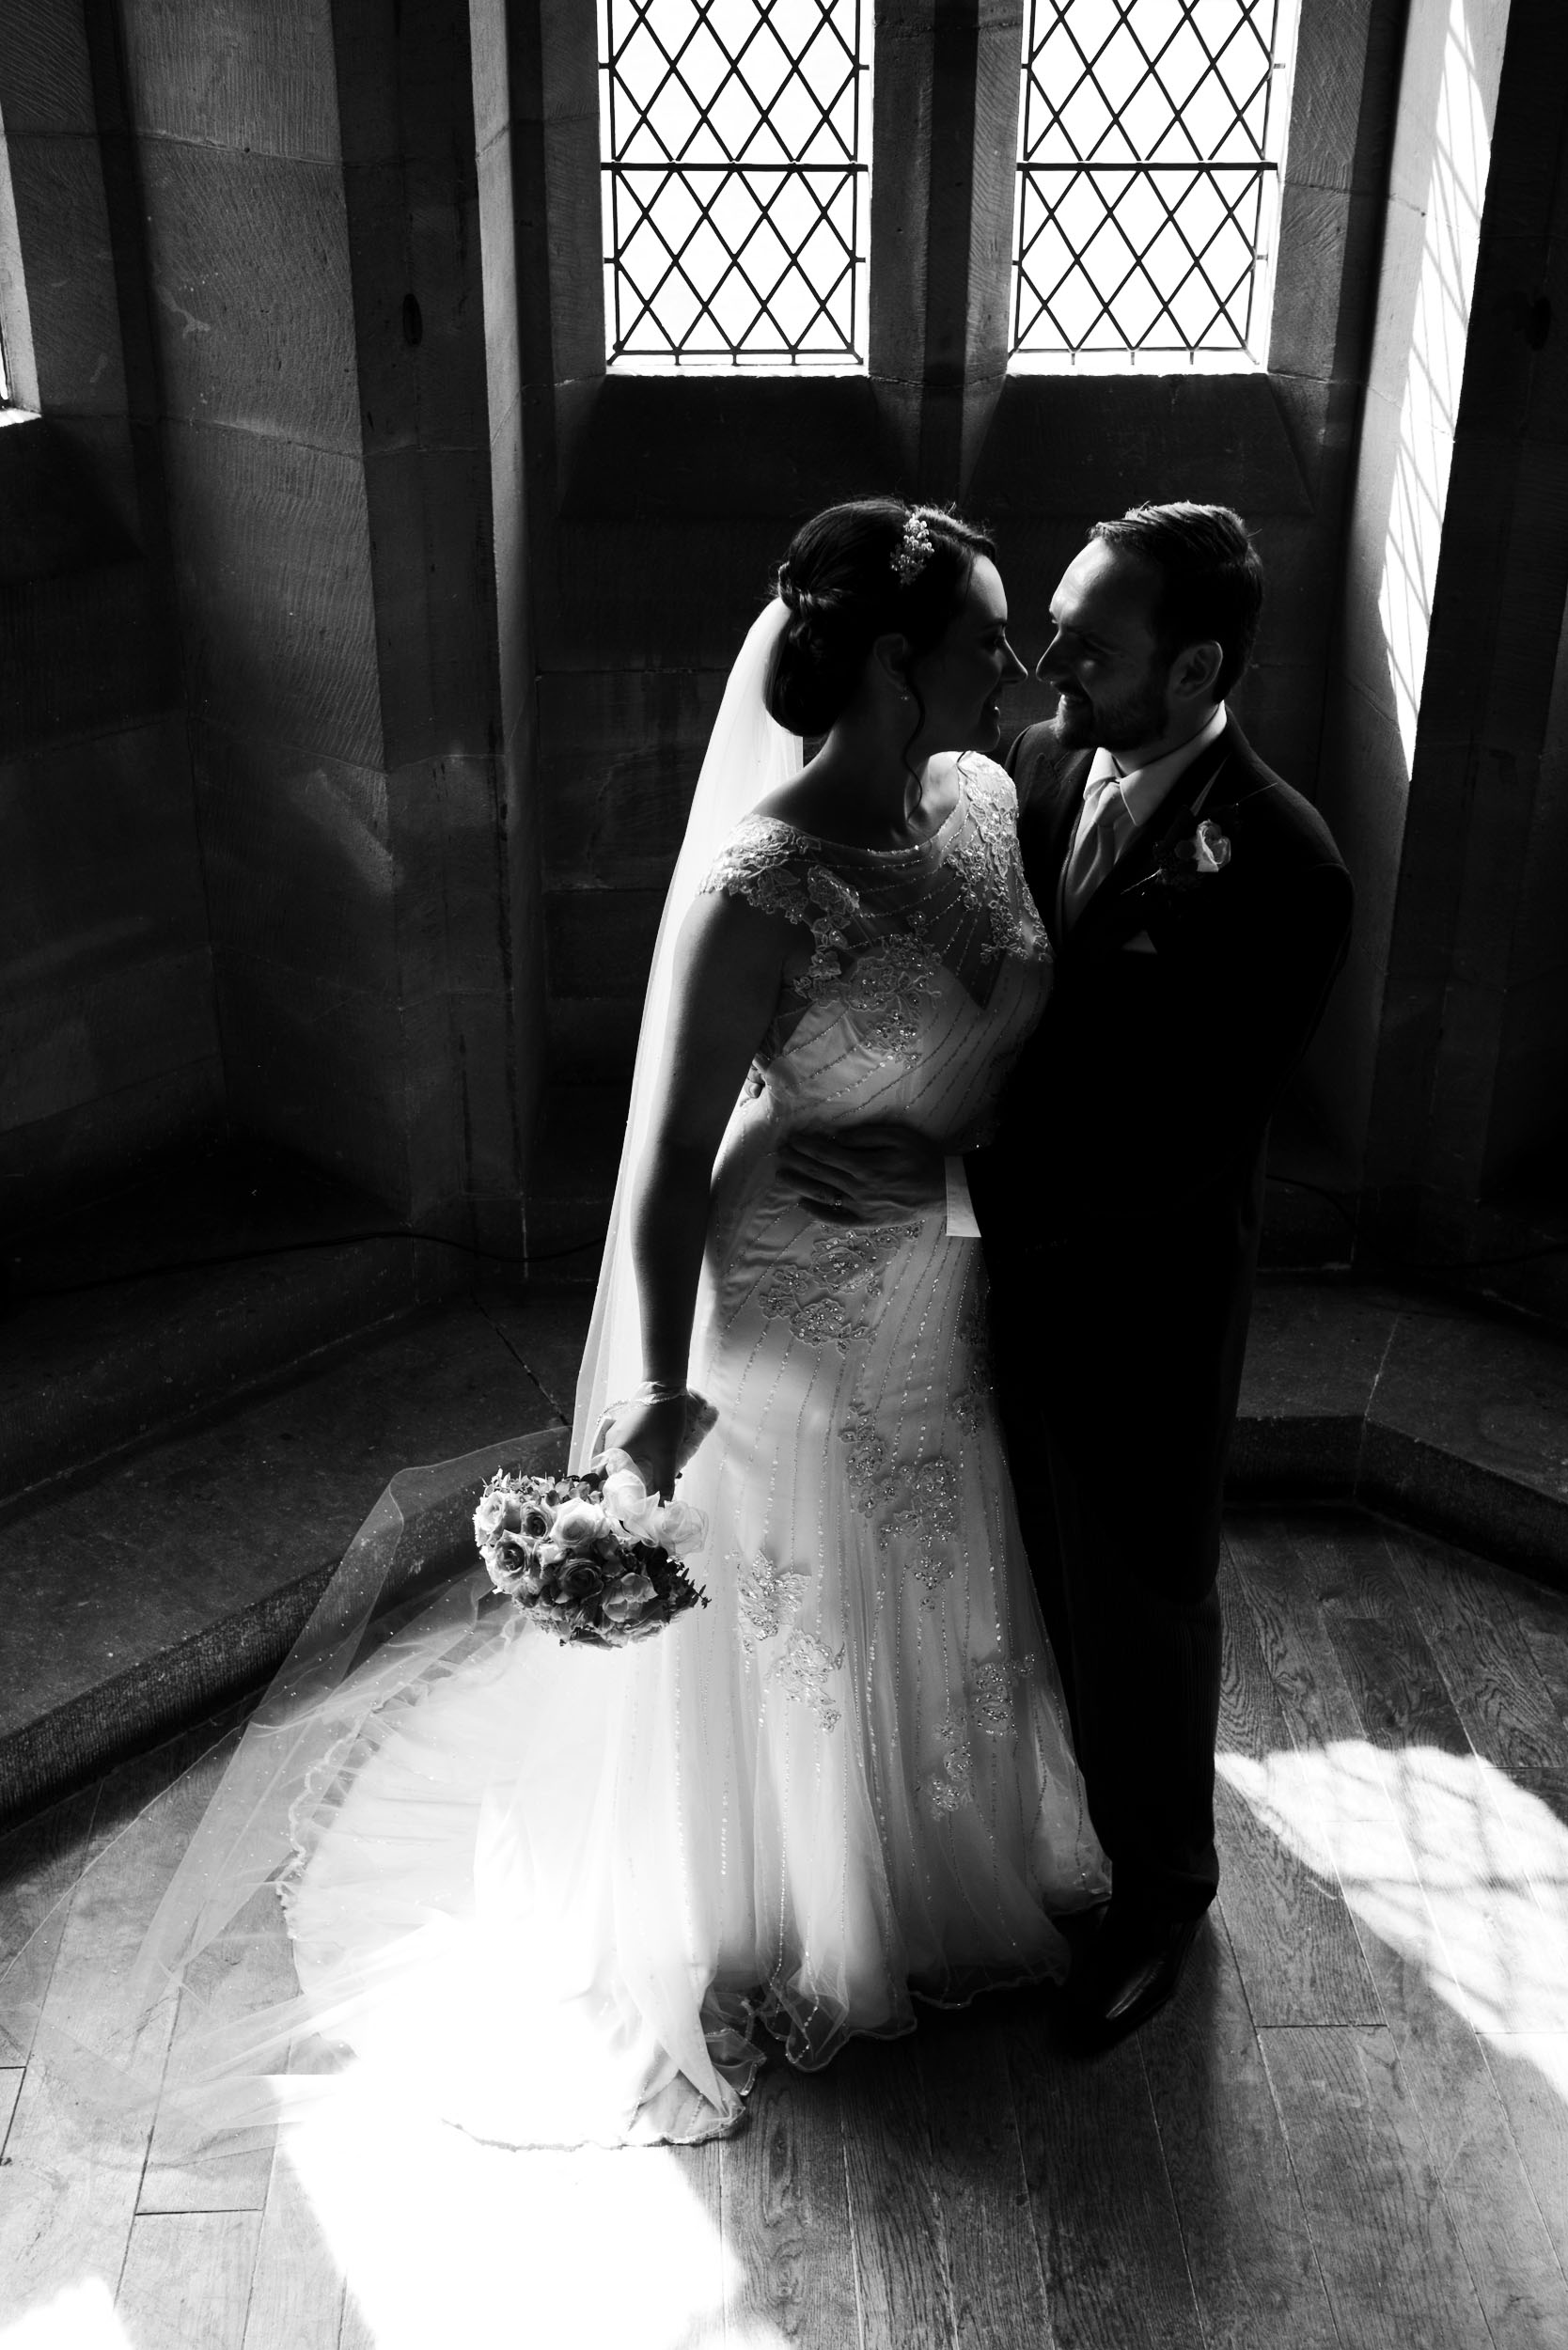 In partial silhouette this high contrast image maintains the intimacy of the couple's first few hours together as newlyweds - taken at  Peckforton Castle  in the bay window